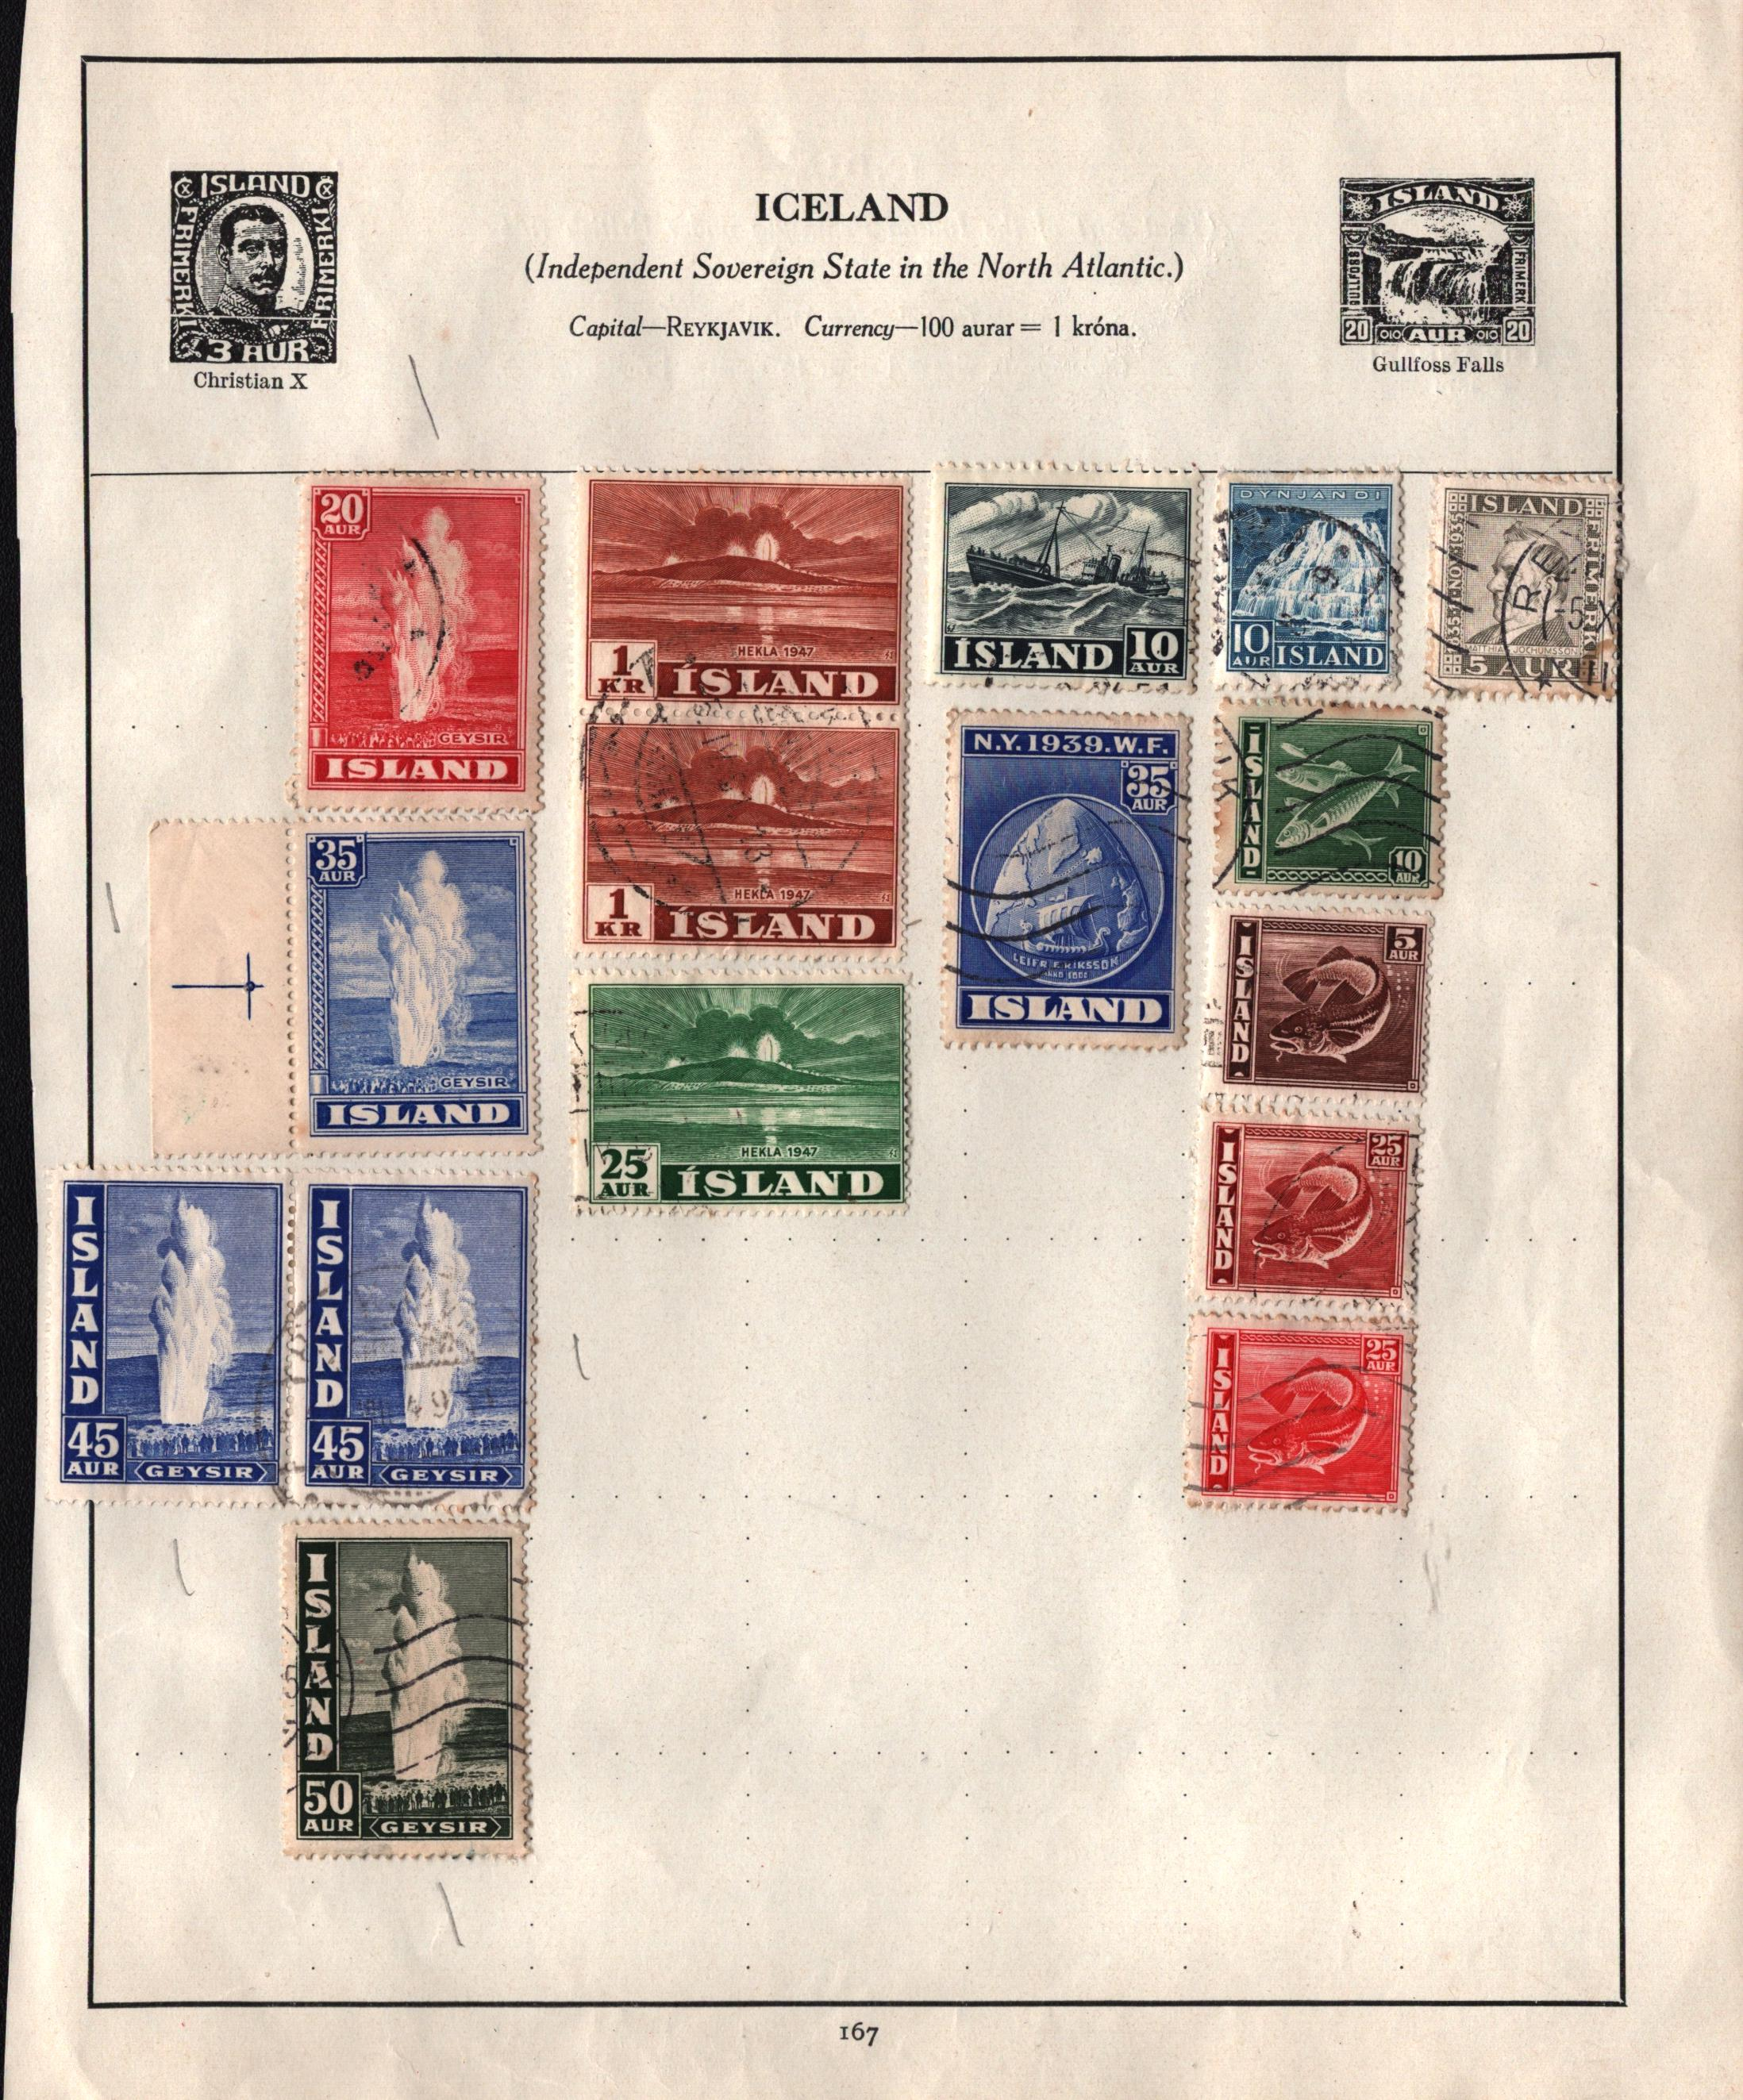 16 Iceland stamps on loose album page. Good condition. We combine postage on multiple winning lots